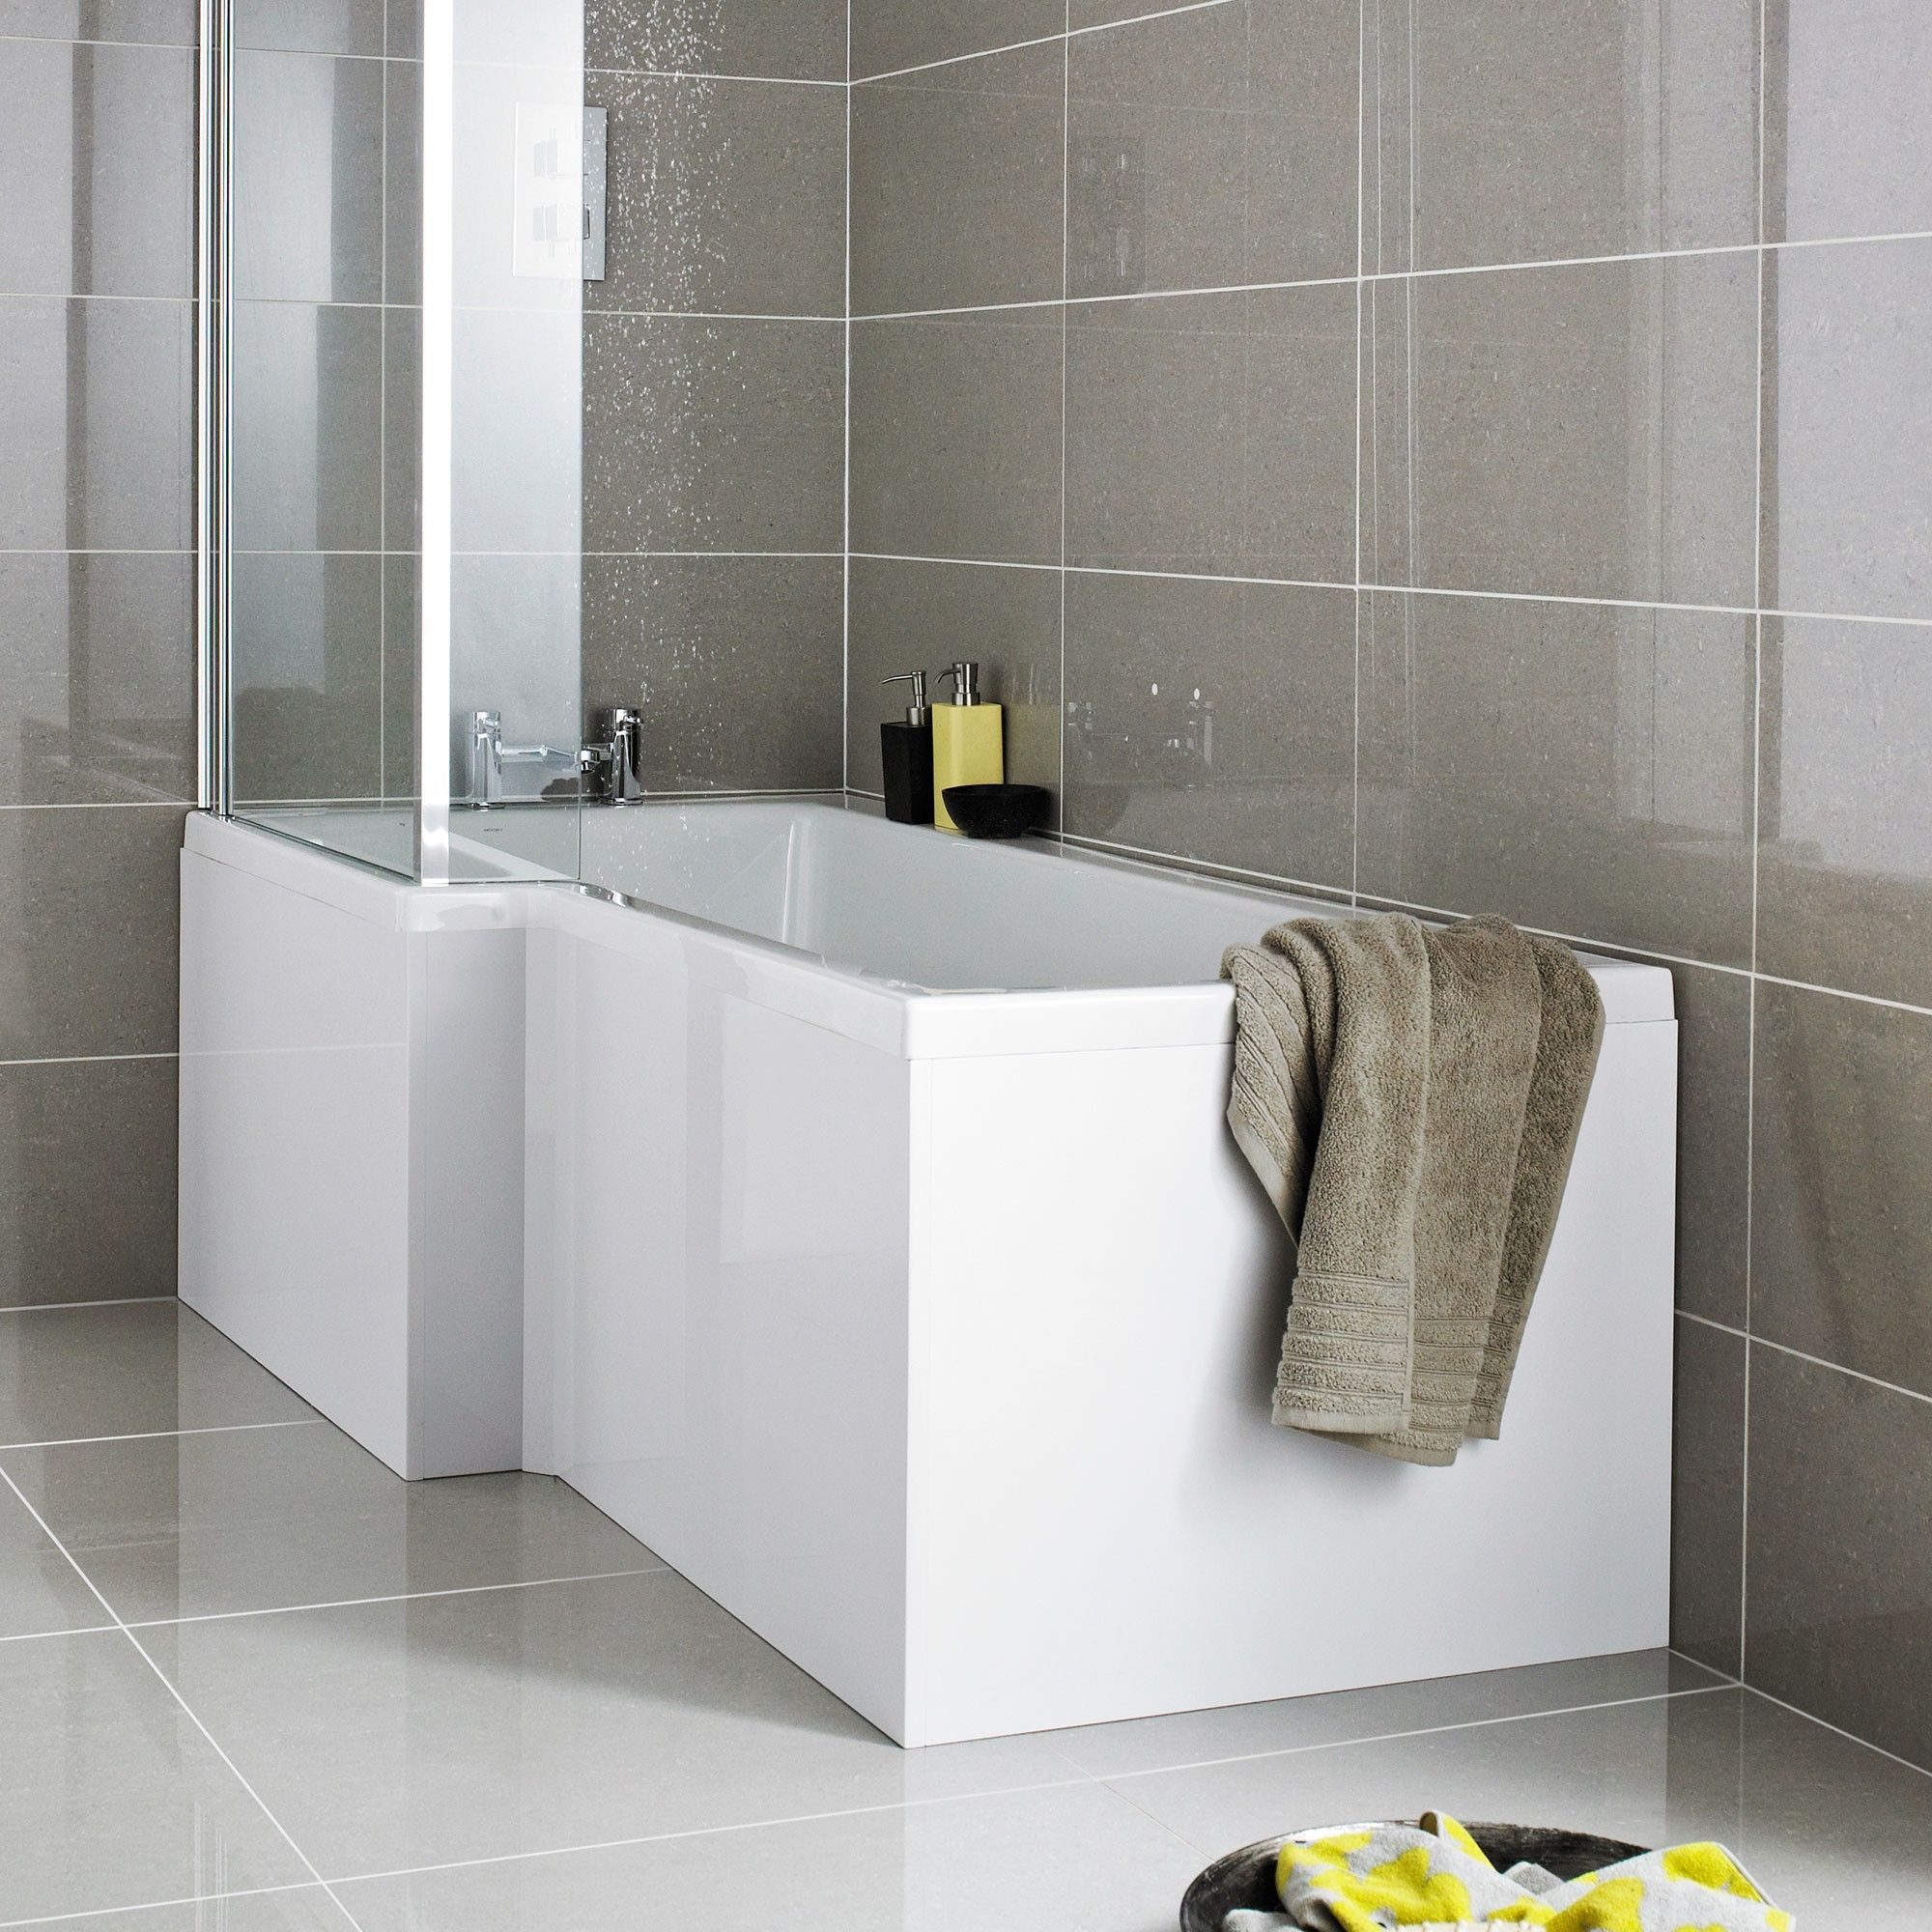 Venice Square 1700mm X 700 850mm L Shaped Left Handed Acrylic Shower Bath